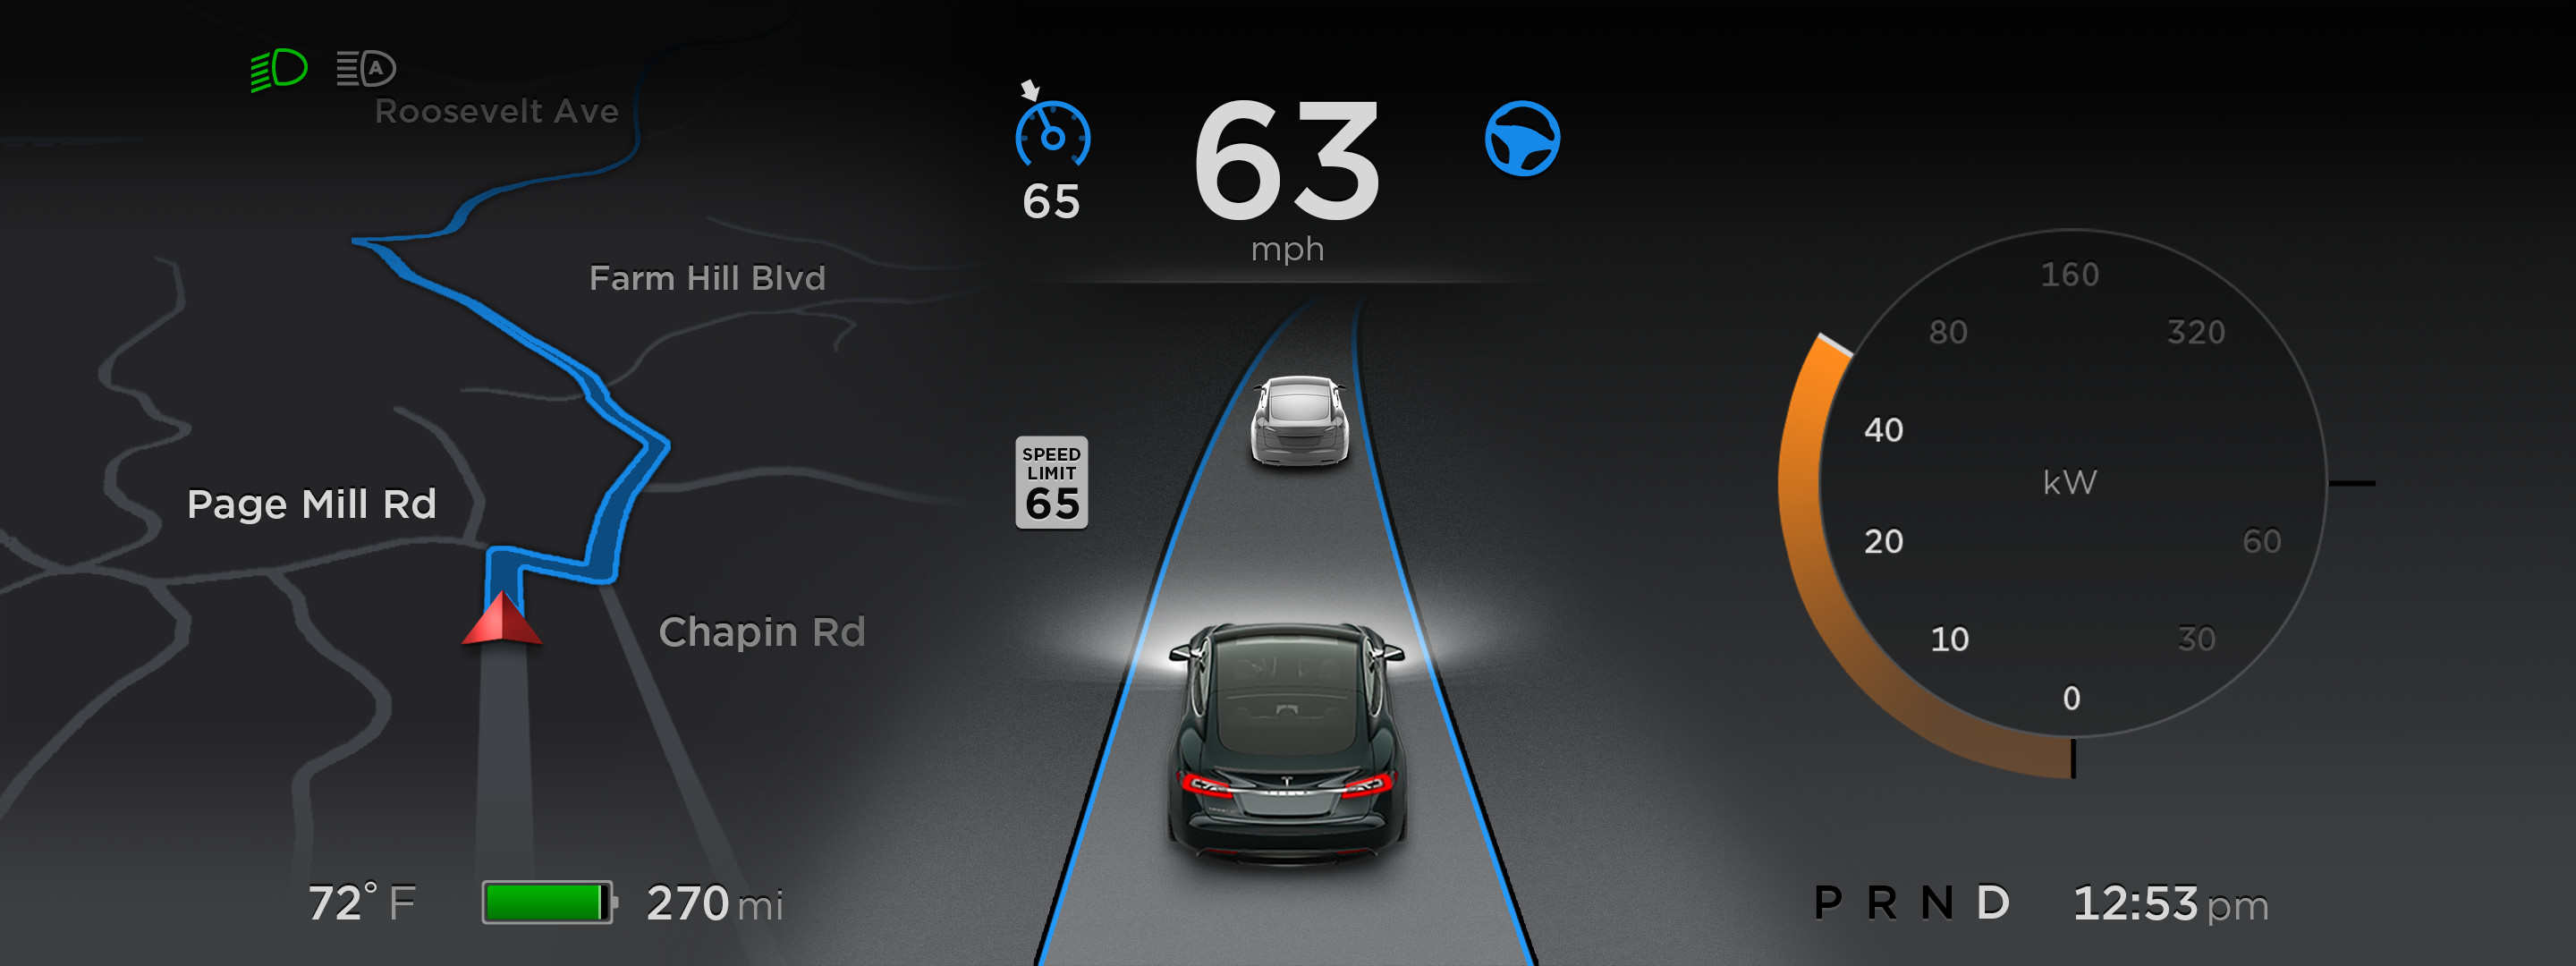 Tesla Autopilot Version 7.0 Dashboard Display [Source: Tesla Motors]